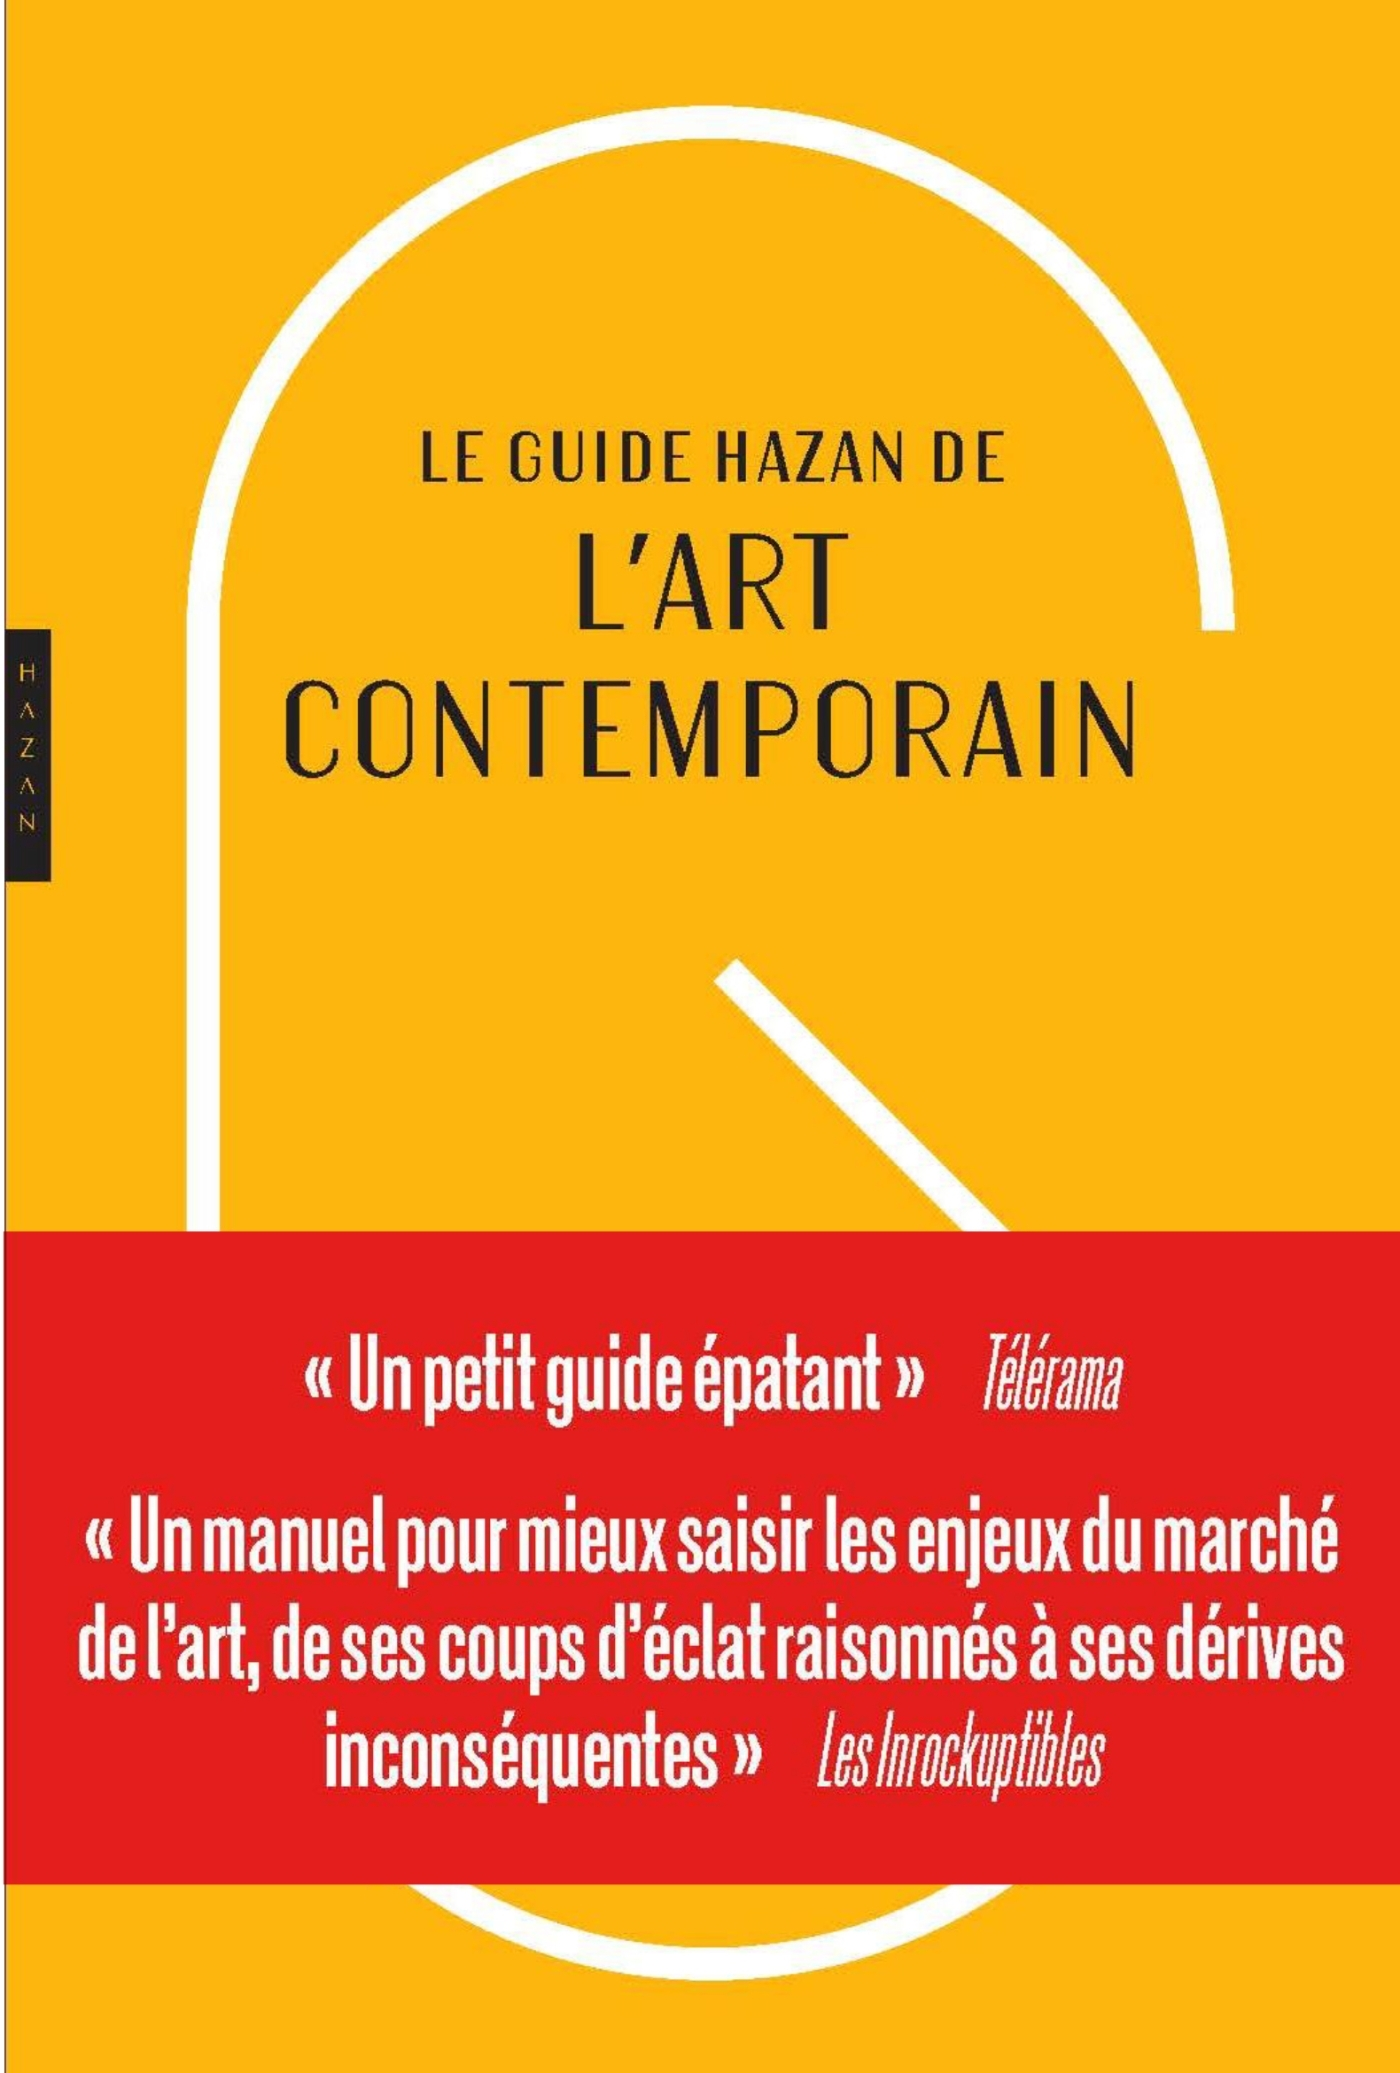 GUIDE HAZAN DE L'ART CONTEMPORAIN 2019